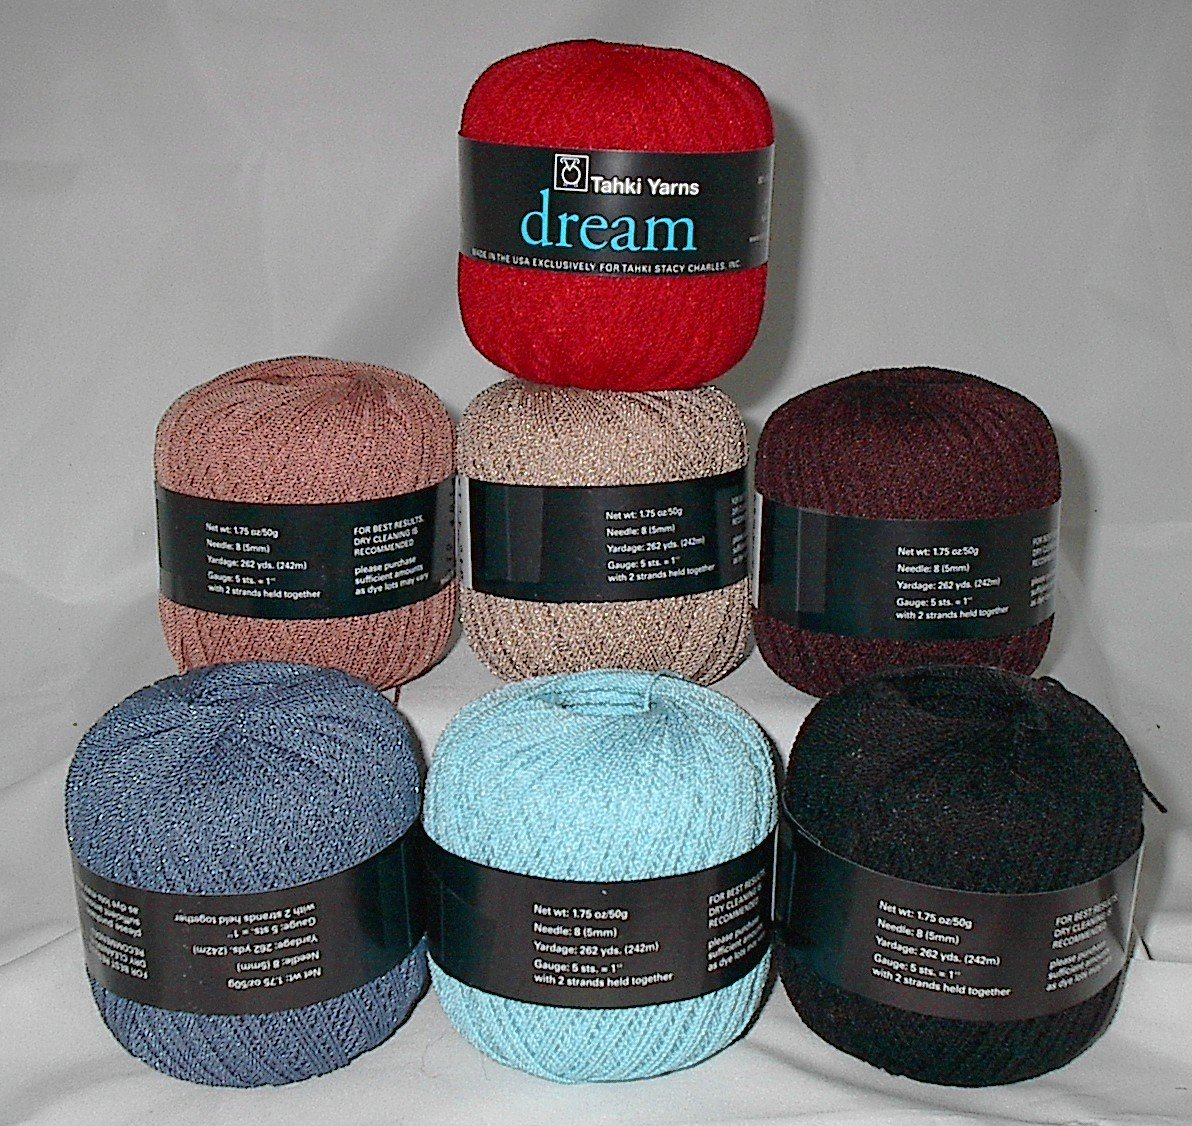 50% Discount on Tahki Dream Wool Blend Yarn Black #015